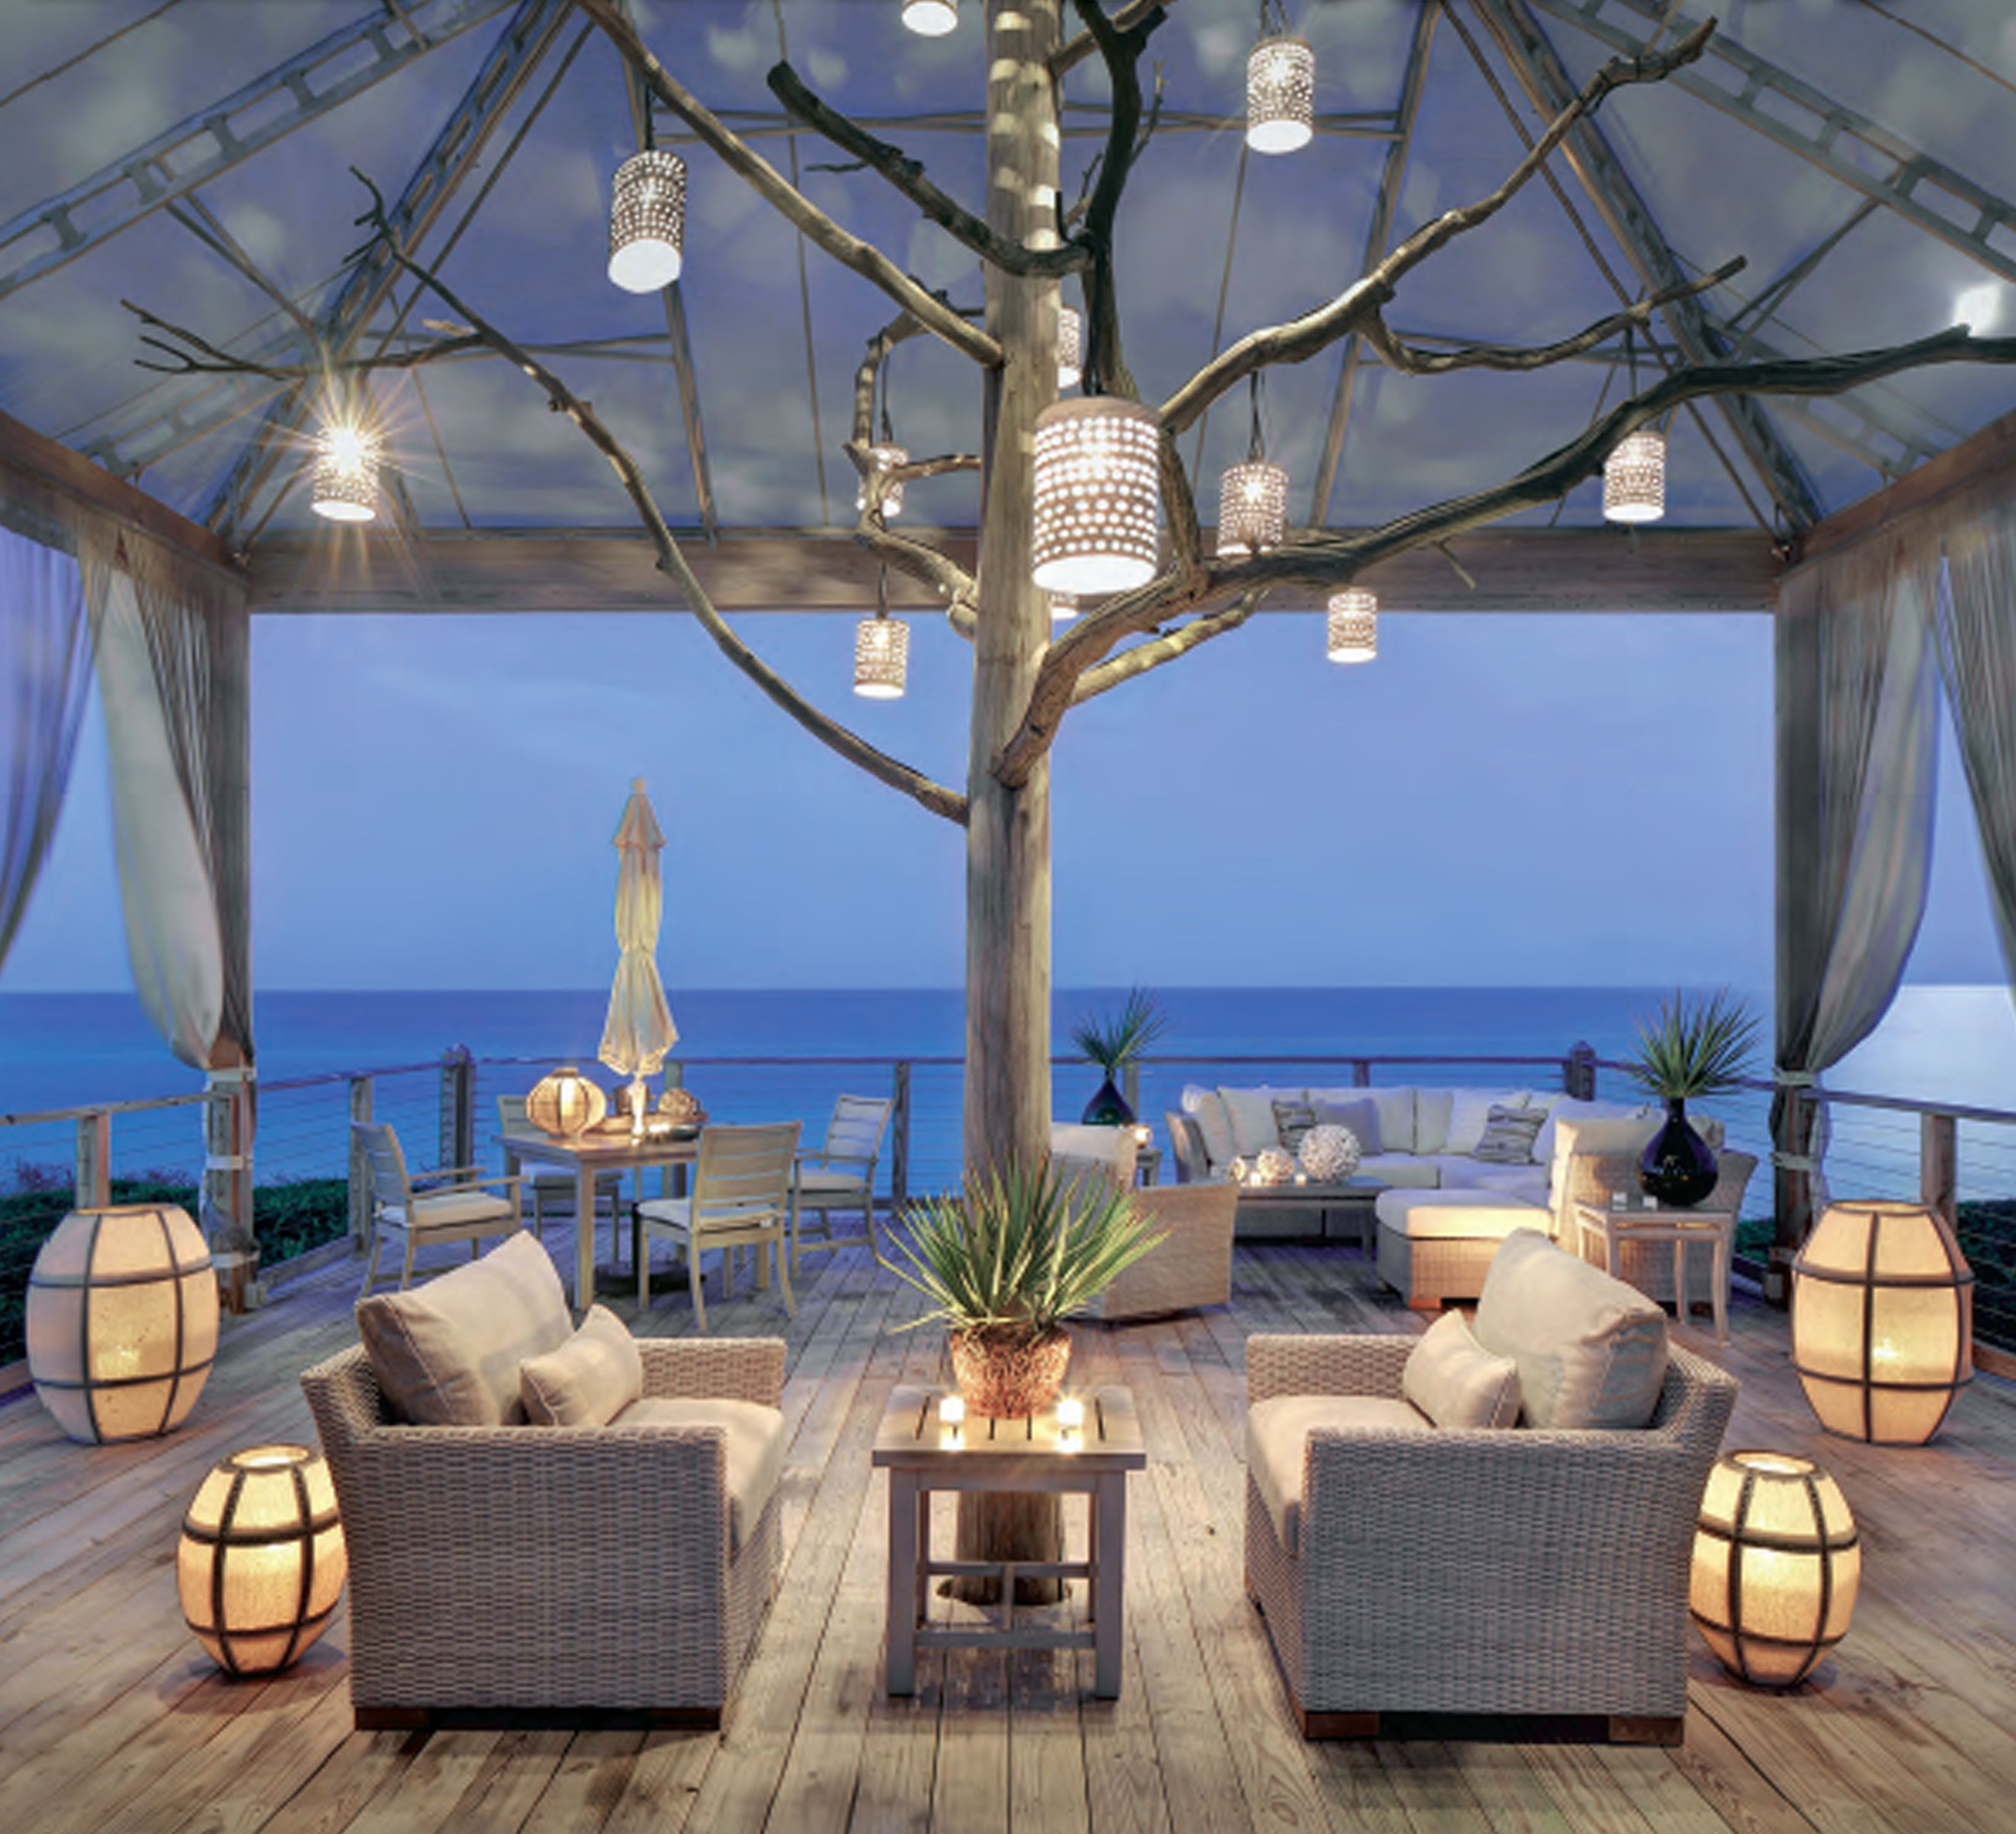 Pin by michelle sawyer on beach wedding pinterest outdoor living